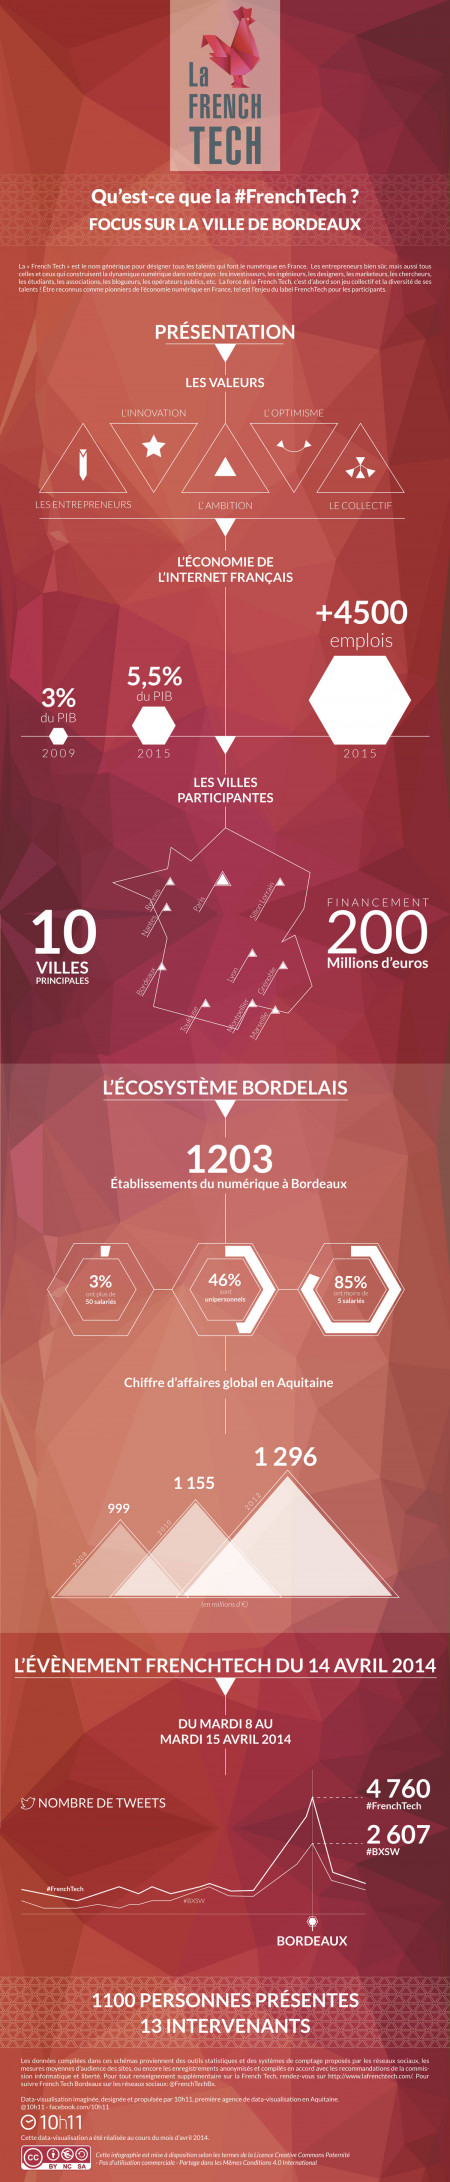 La FrenchTech à Bordeaux